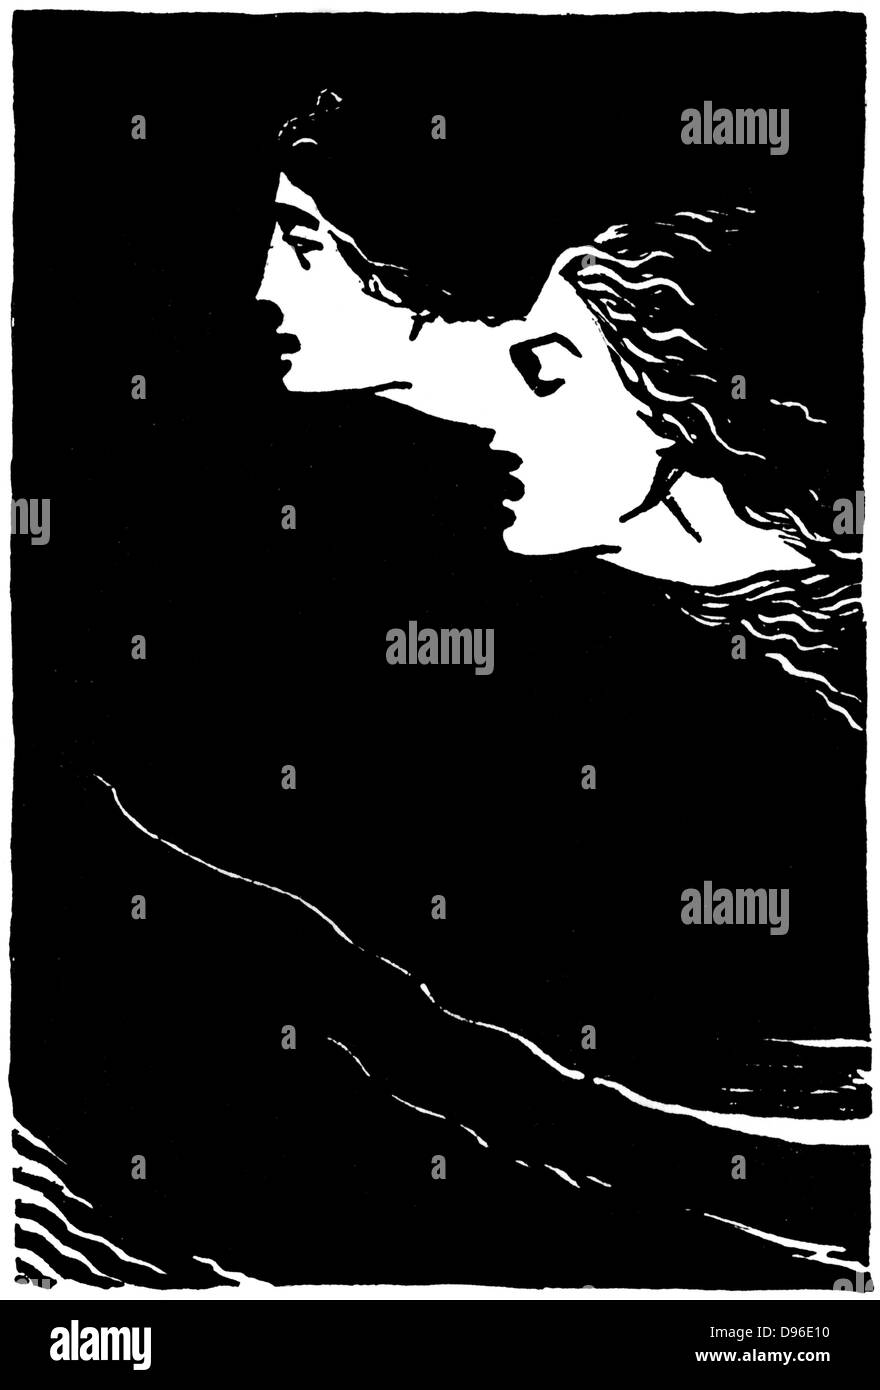 Paolo and Francesca' Early 20th century illustration for the poem by Dante Alighieri (1265-1321), Italian poet. - Stock Image